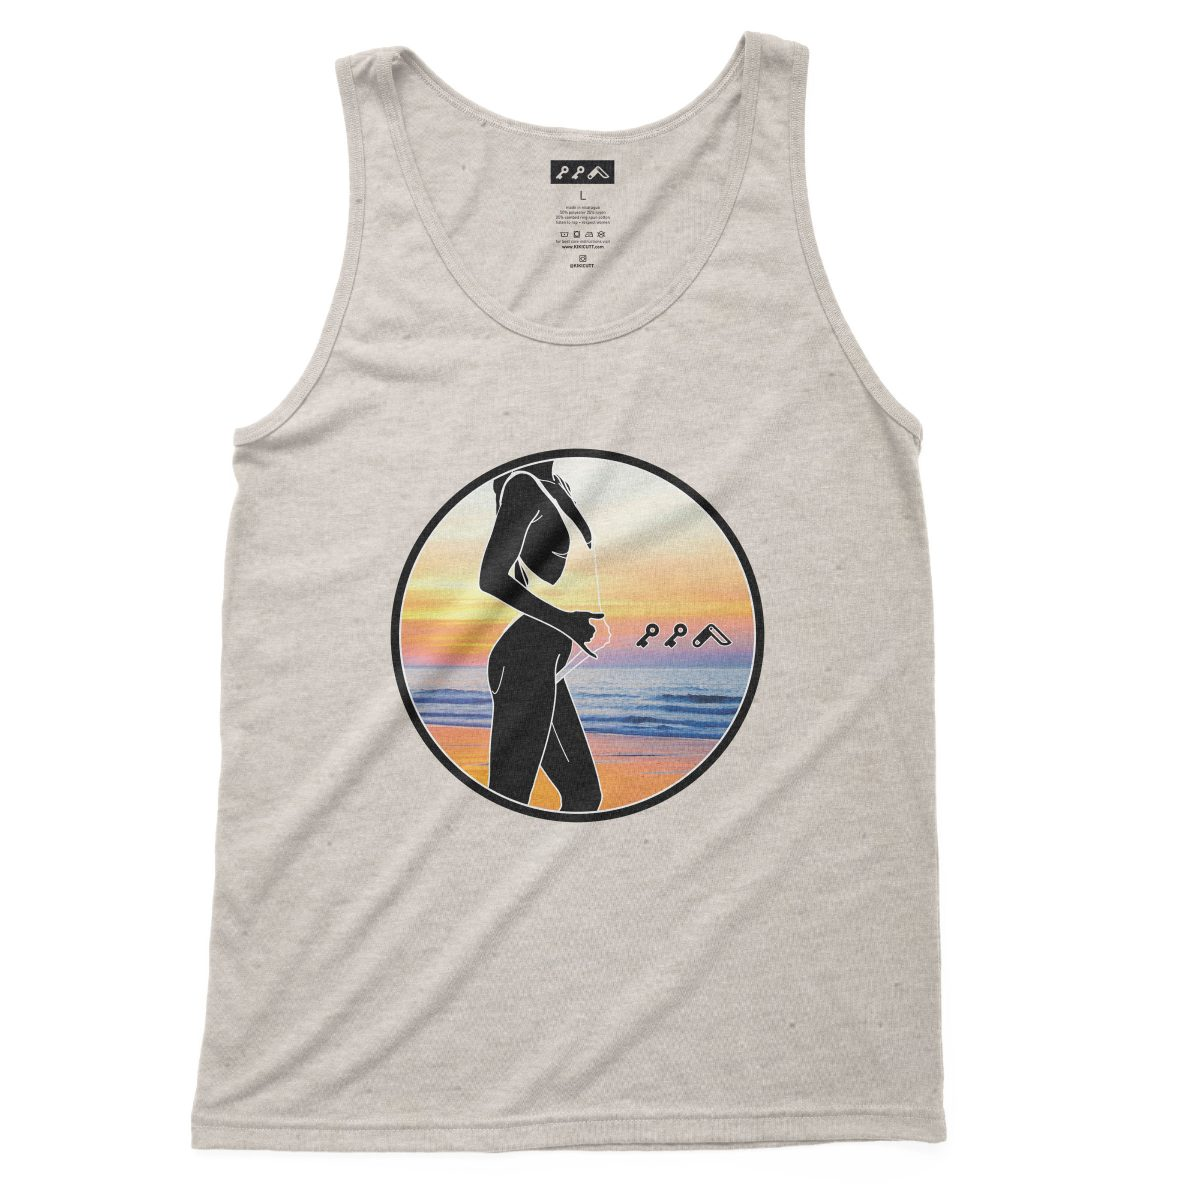 """BAE WATCH"" sexy music festival tank top in oatmeal at kikicutt.com"